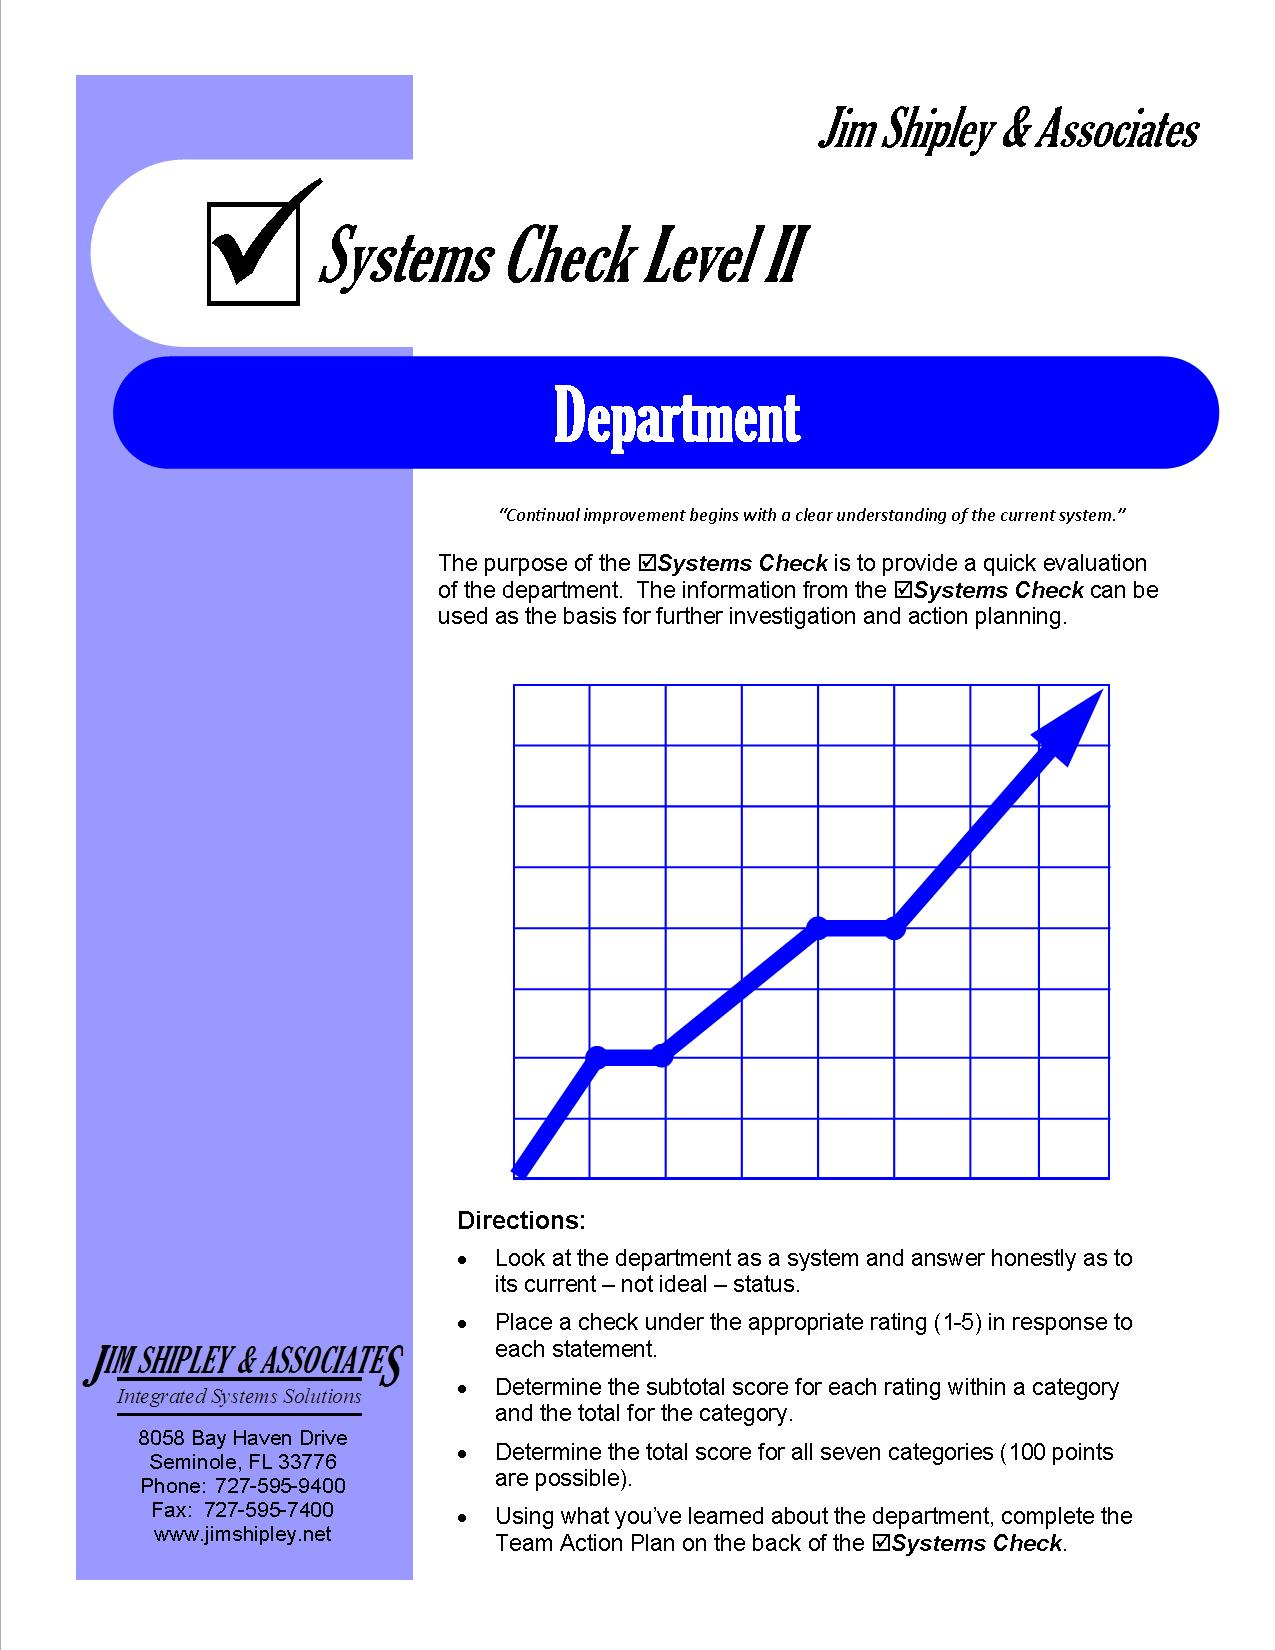 SCD - Department Systems Check II Cover Image